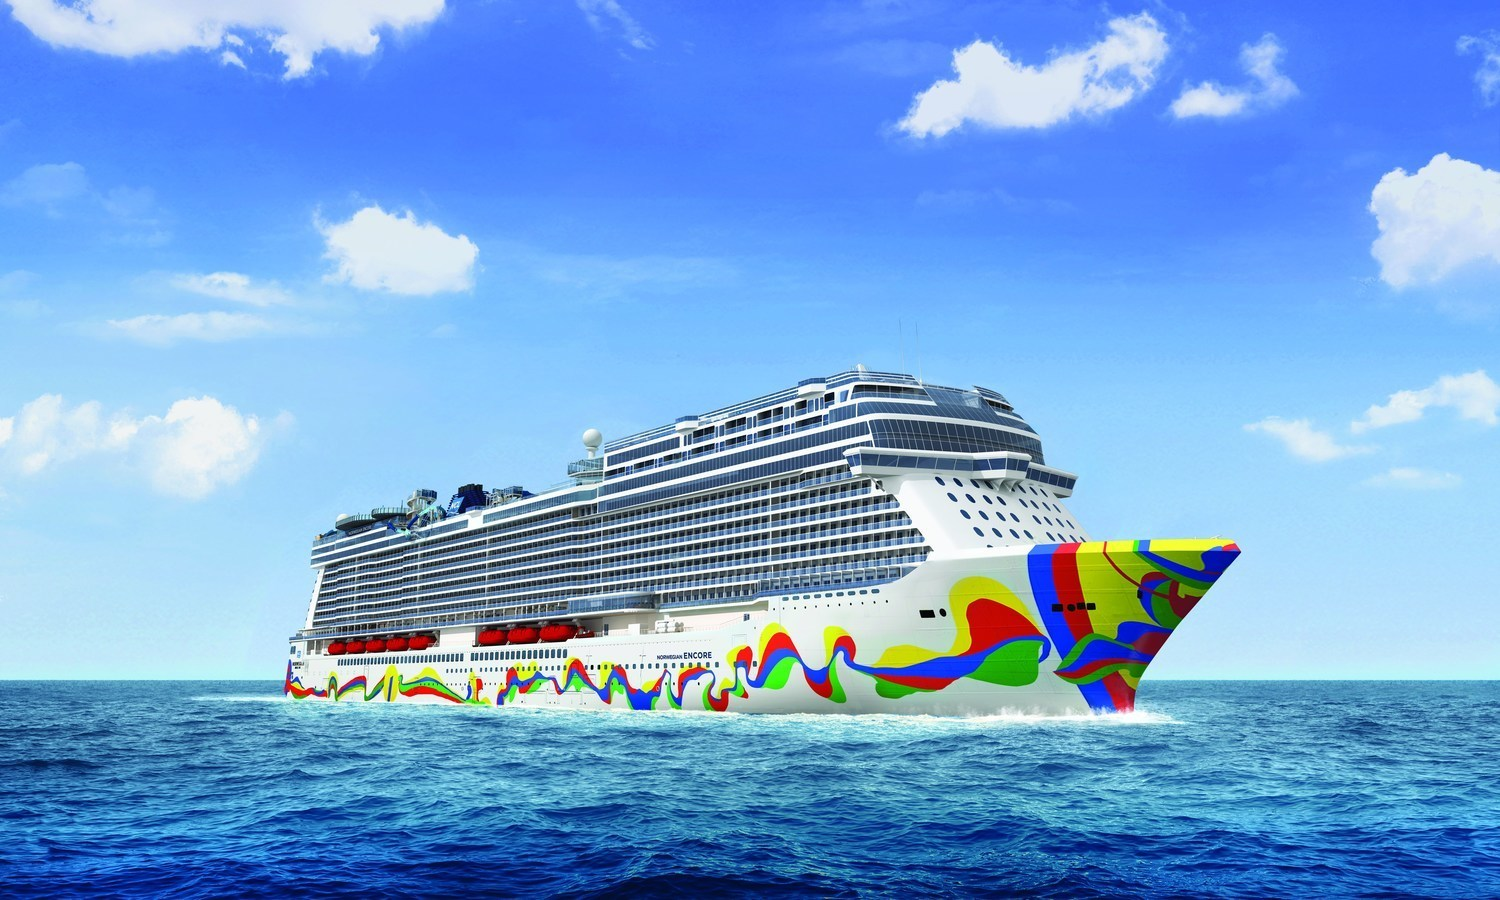 Norwegian Cruise Line says it will eliminate single-use plastic bottles across its fleet. The cruise line previously got rid of single-use plastic straws in 2018 across its private islandsand resort as well as its 16 ships.